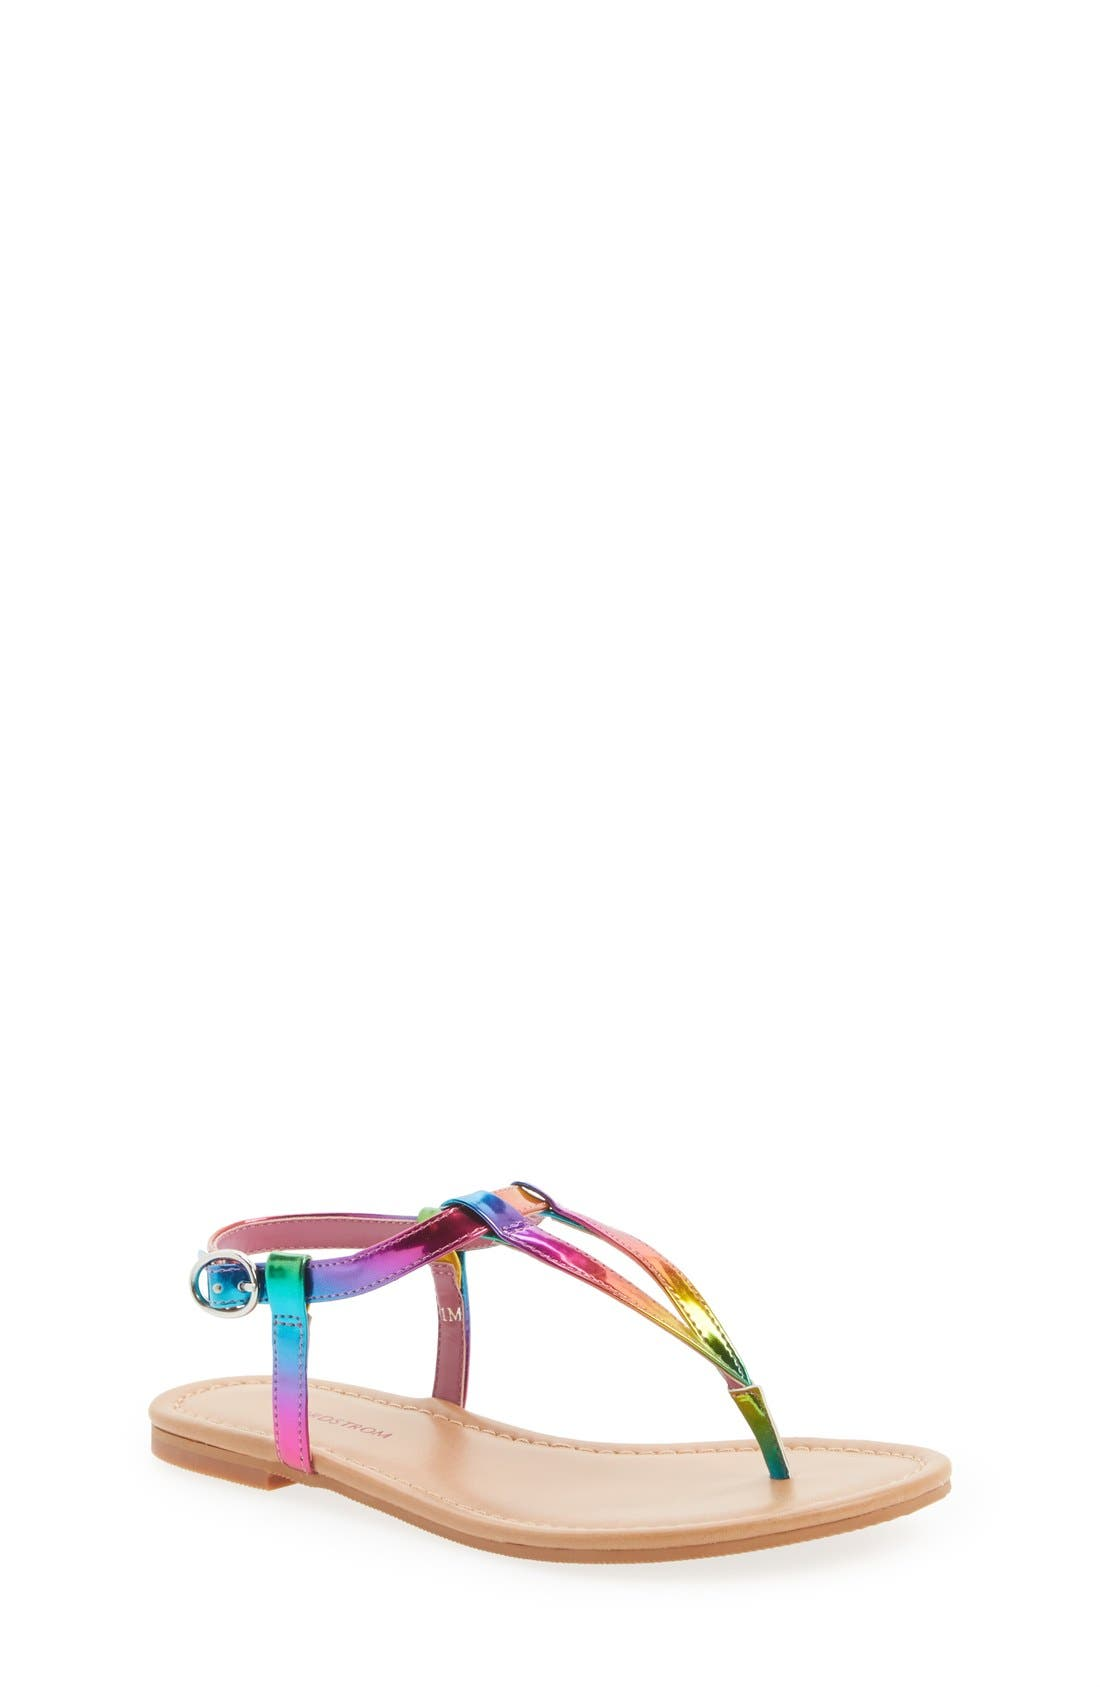 Main Image - Nordstrom 'Audra' Sandal (Toddler, Little Kid & Big Kid)